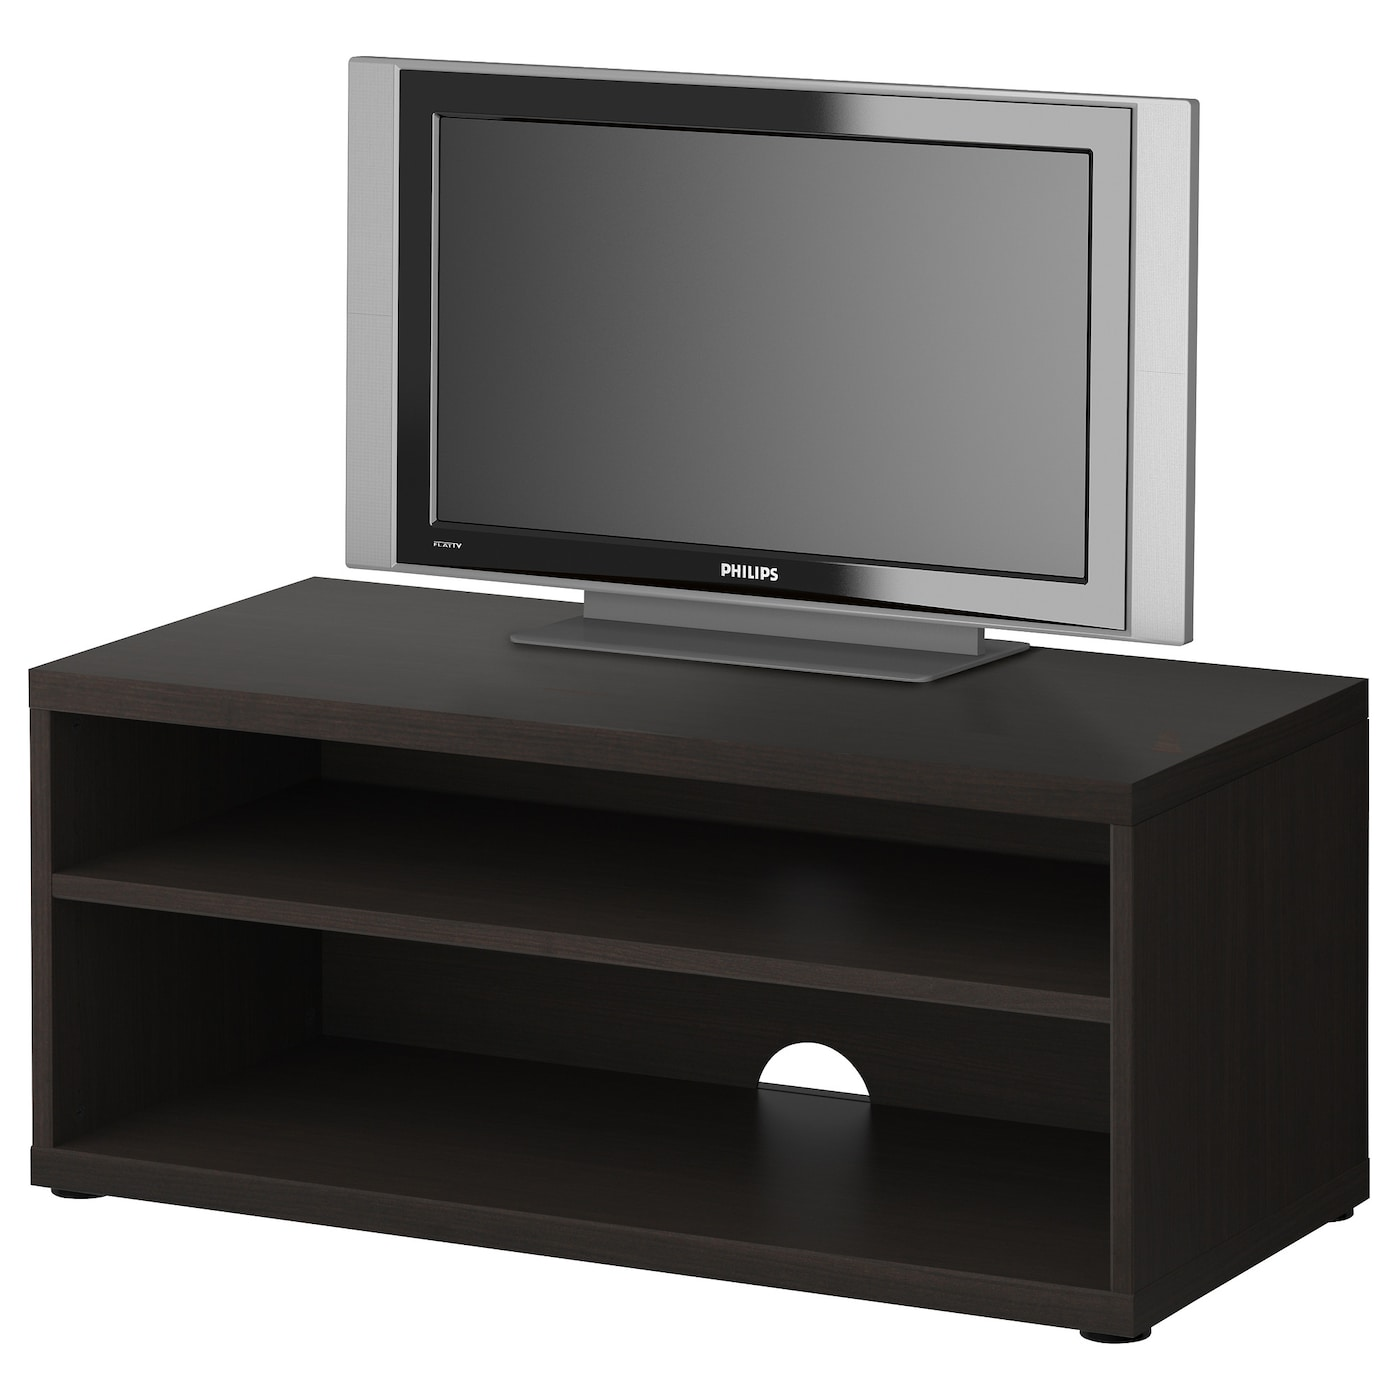 tv bank eiche beautiful tenzo profil tvbank mm weieiche with tv bank eiche with tv bank eiche. Black Bedroom Furniture Sets. Home Design Ideas